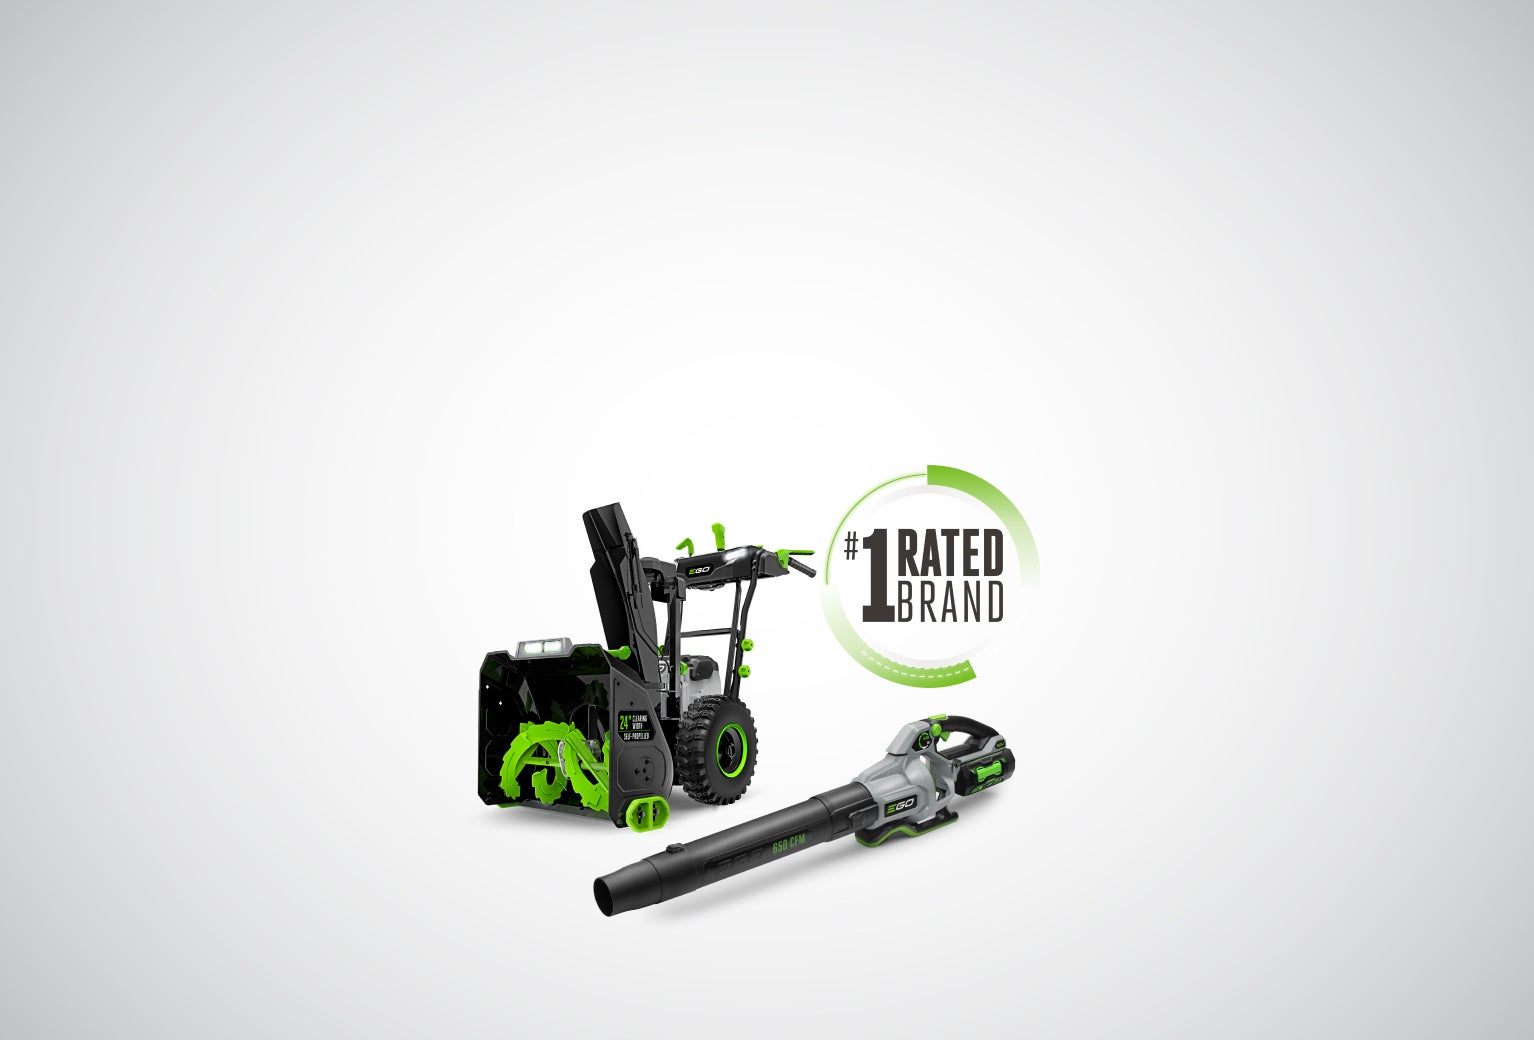 Ego Chainsaw and Blower